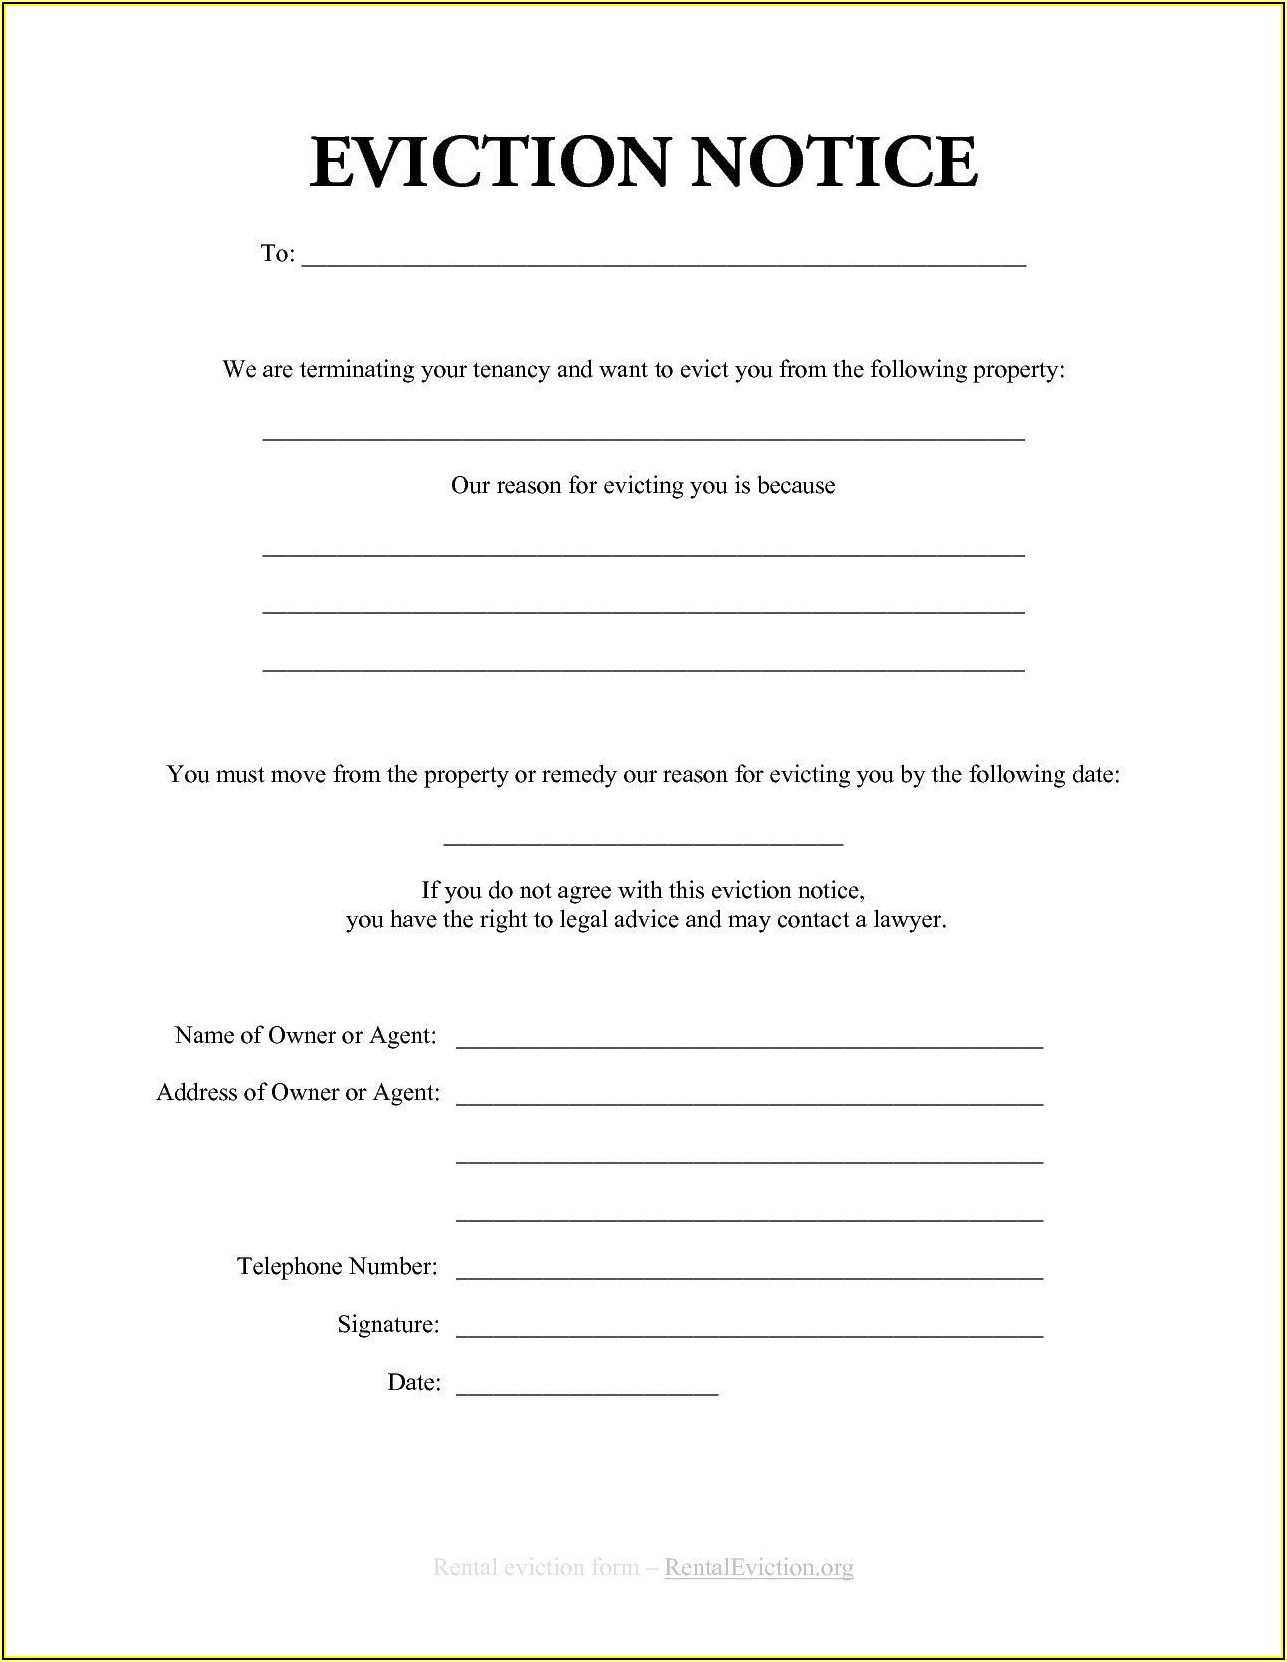 Eviction Notice Template Microsoft Word